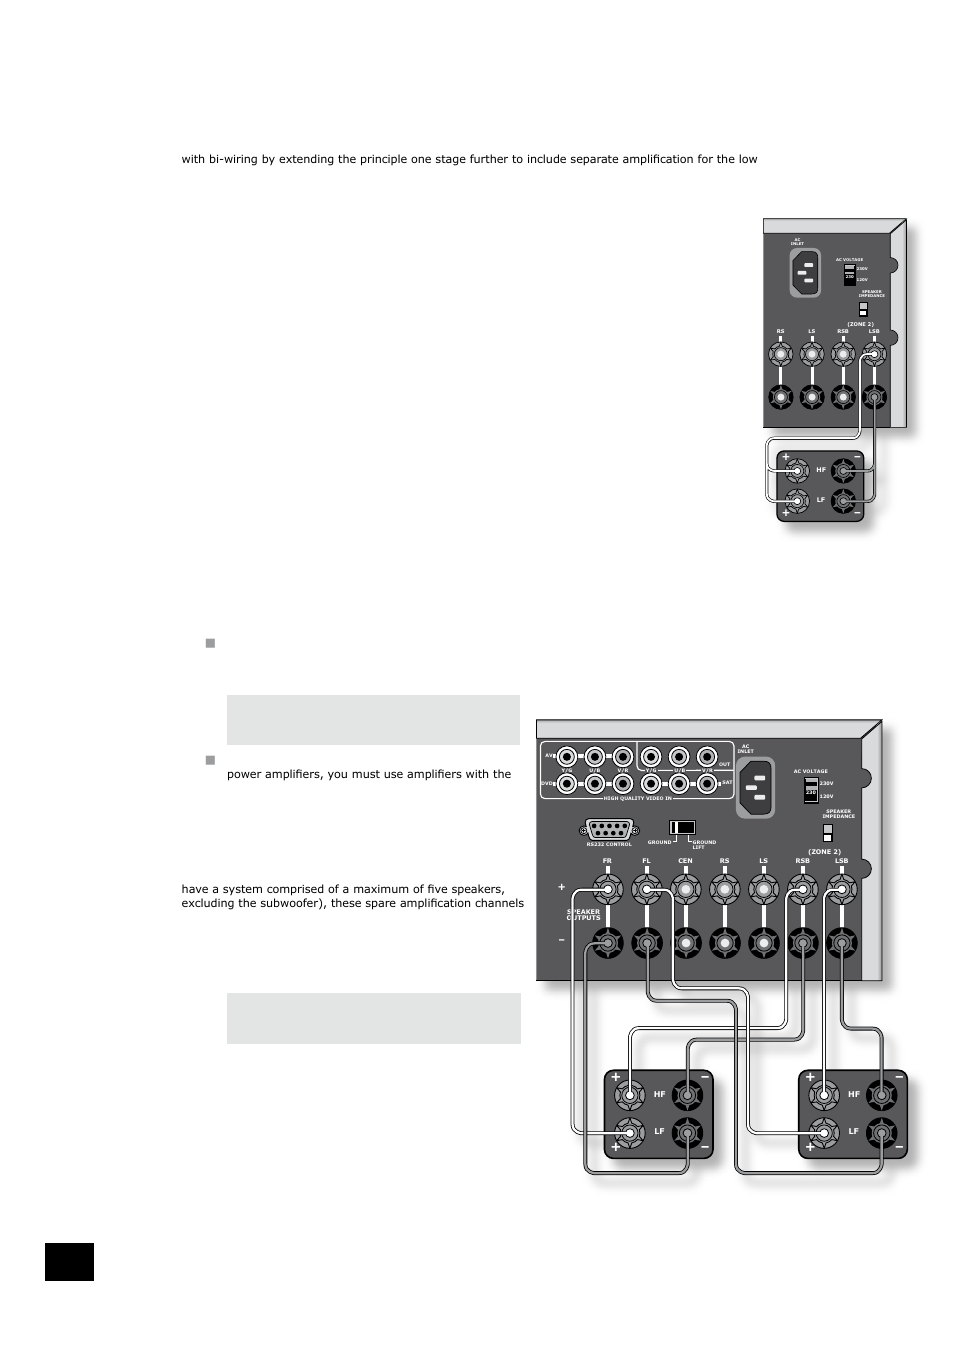 Bi Wiring And Amping Loudspeakers Before You Start Important Speakers Diagram Information